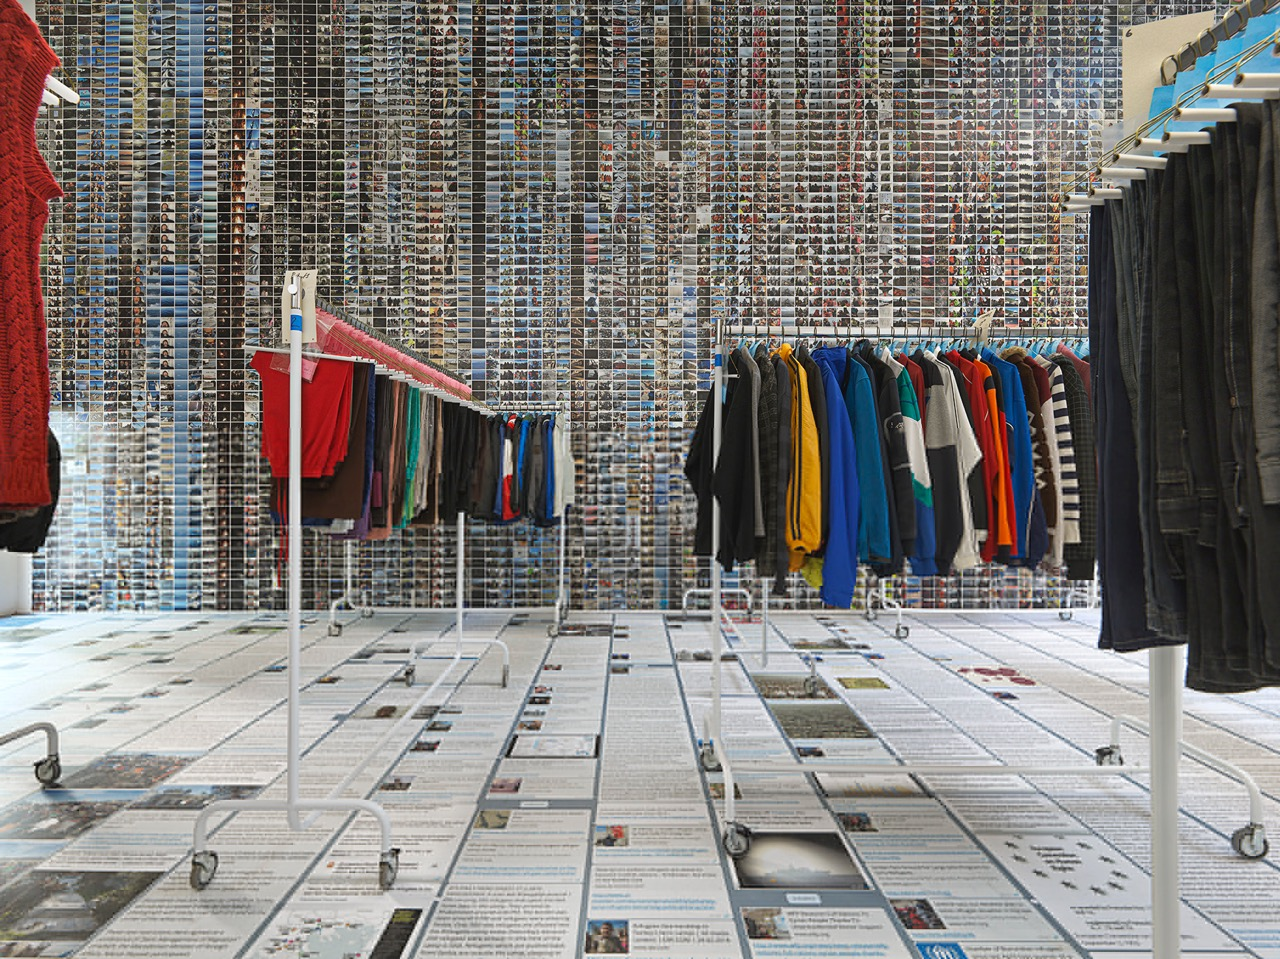 ai-weiwei-laundromat-refugees-jeffrey-deitch-new-york-designboom-04